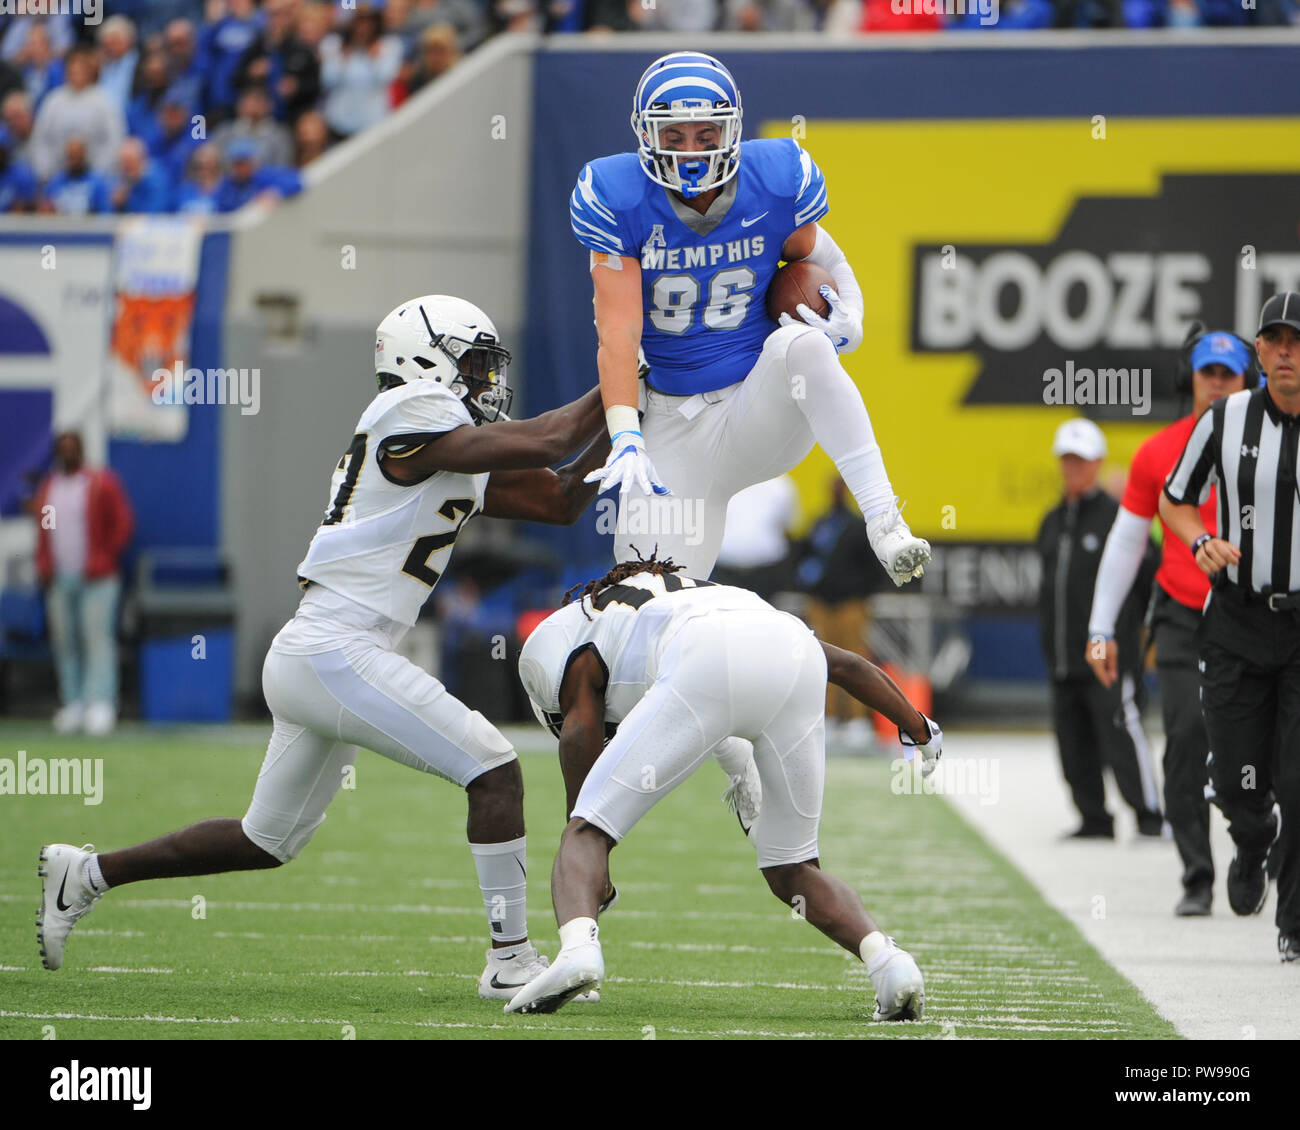 Memphis, TN, USA. 13th Oct, 2018. Memphis Tigers tight end, JOEY MAGNIFICO (86), jumps over the UCF defense during the NCAA football game between the Memphis Tigers and the Central Florida Knights at Liberty Bowl Stadium in Memphis, TN. UCF defeated Memphis, 31-30. Kevin Langley/CSM/Alamy Live News Stock Photo